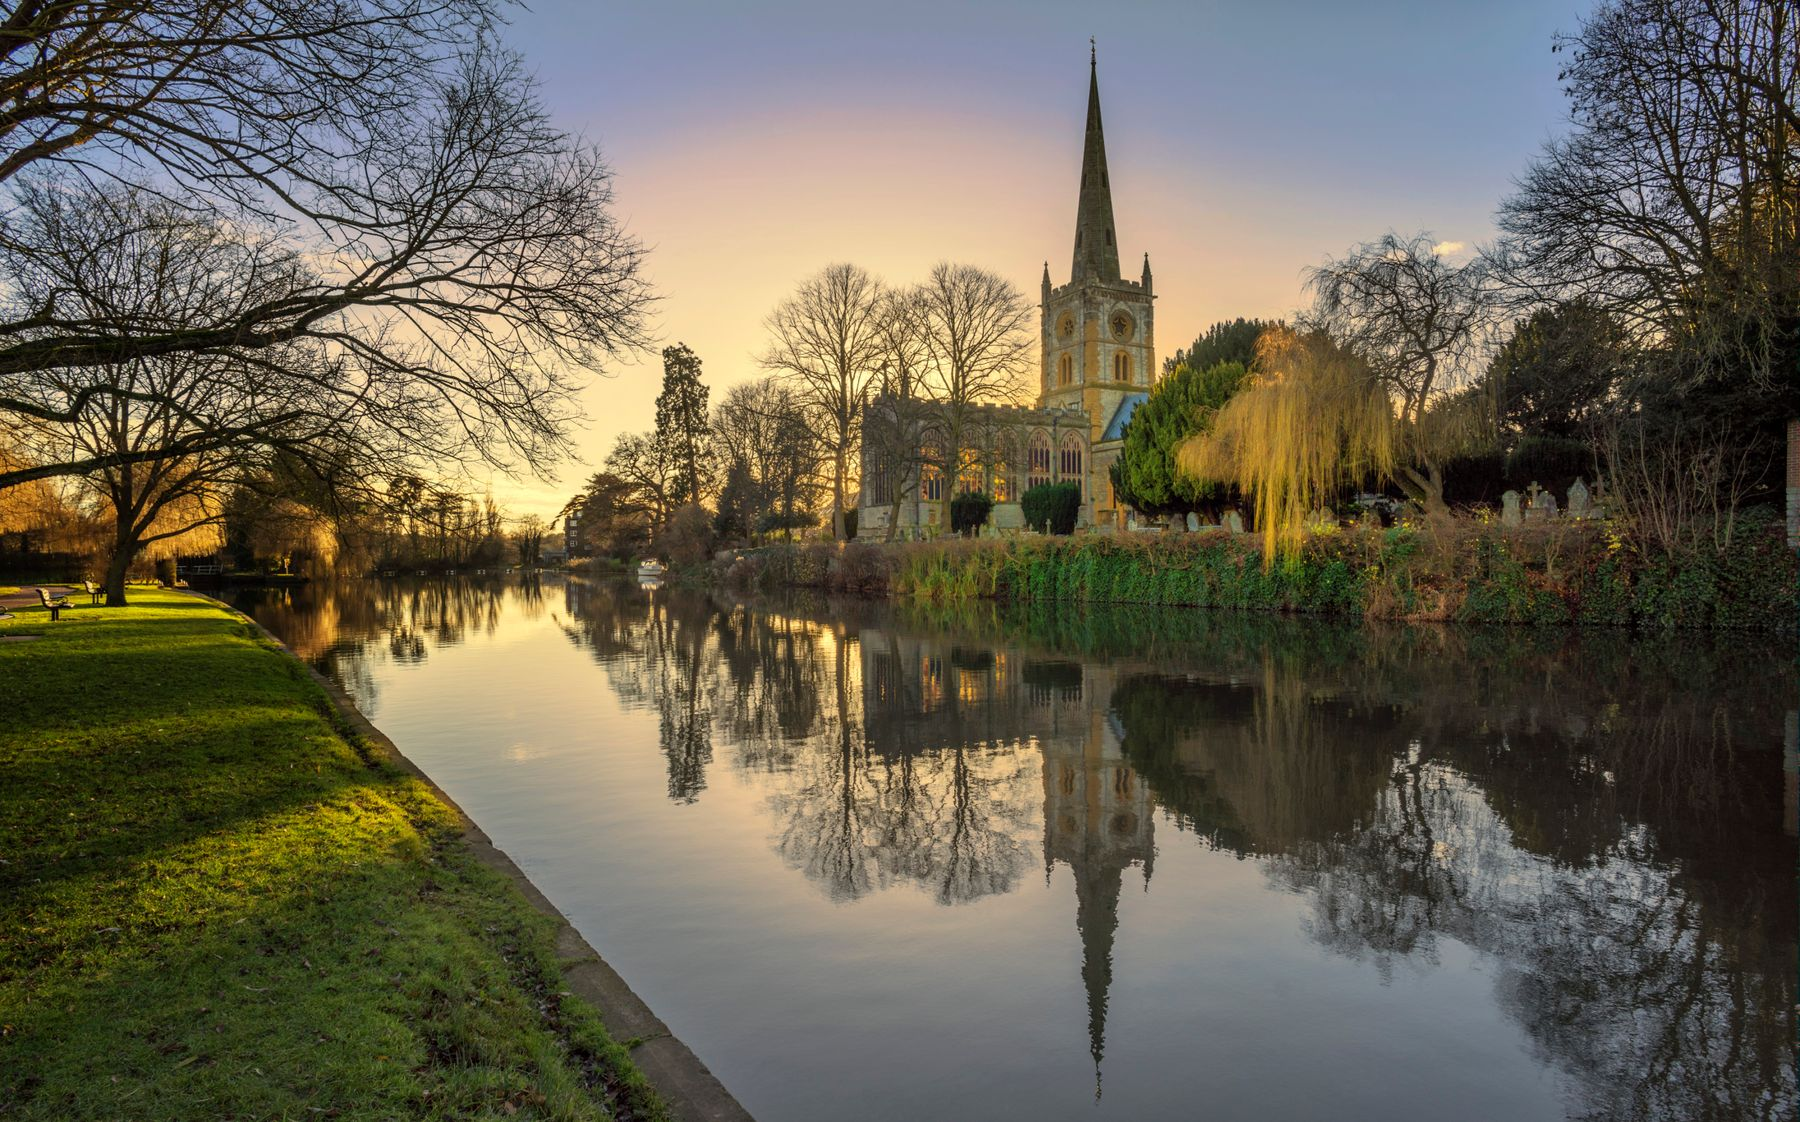 Shakespeare's home town, Stratford-Upon-Avon